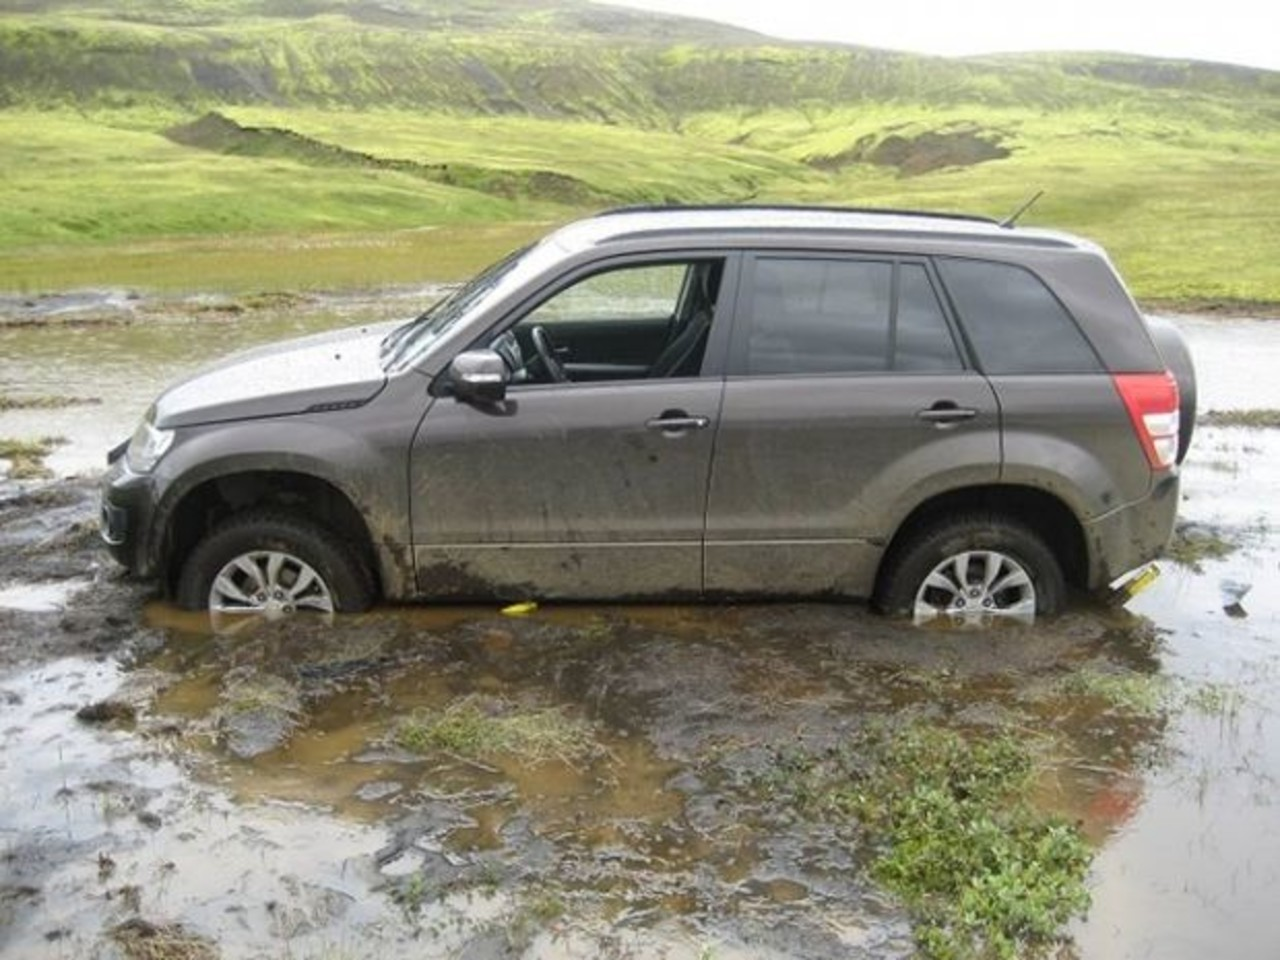 A car stuck in water after illegal off road driving